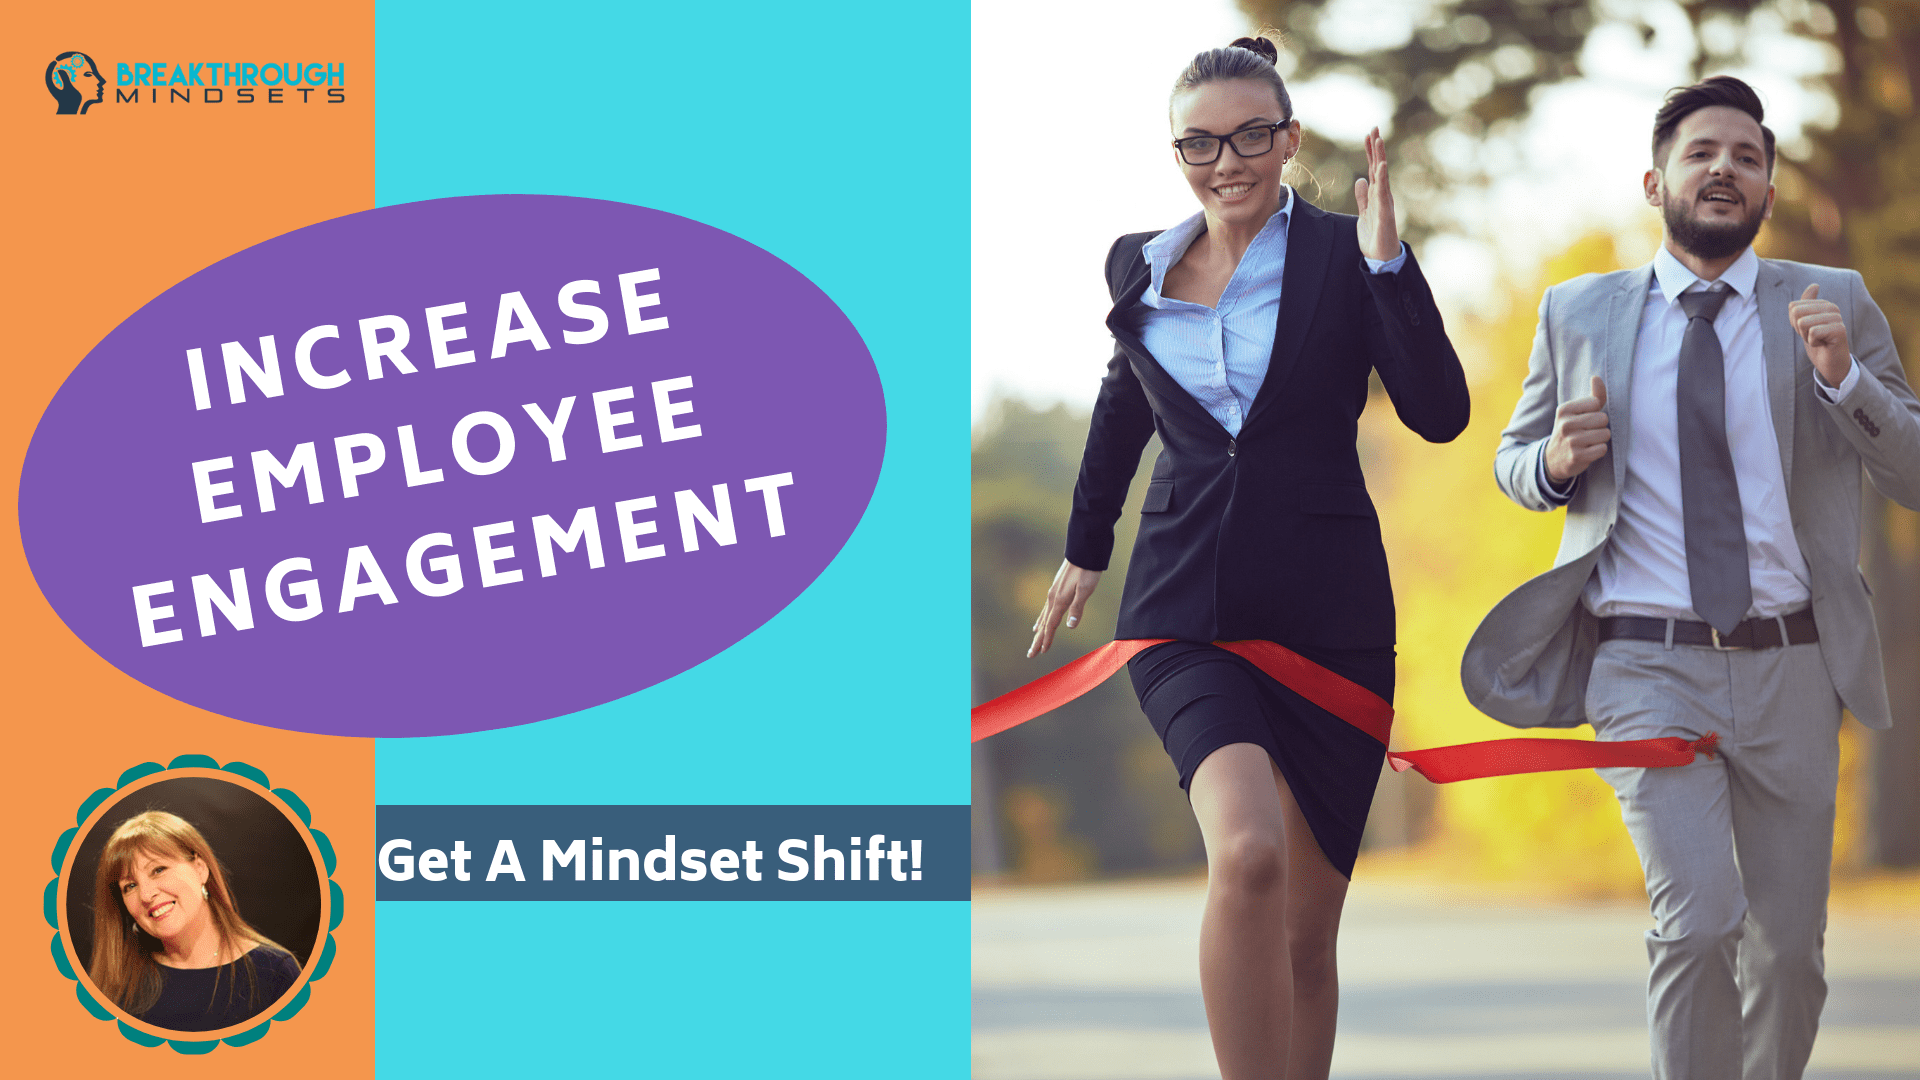 Employee engagement drives bottom-line results. - Breakthrough Mindsets